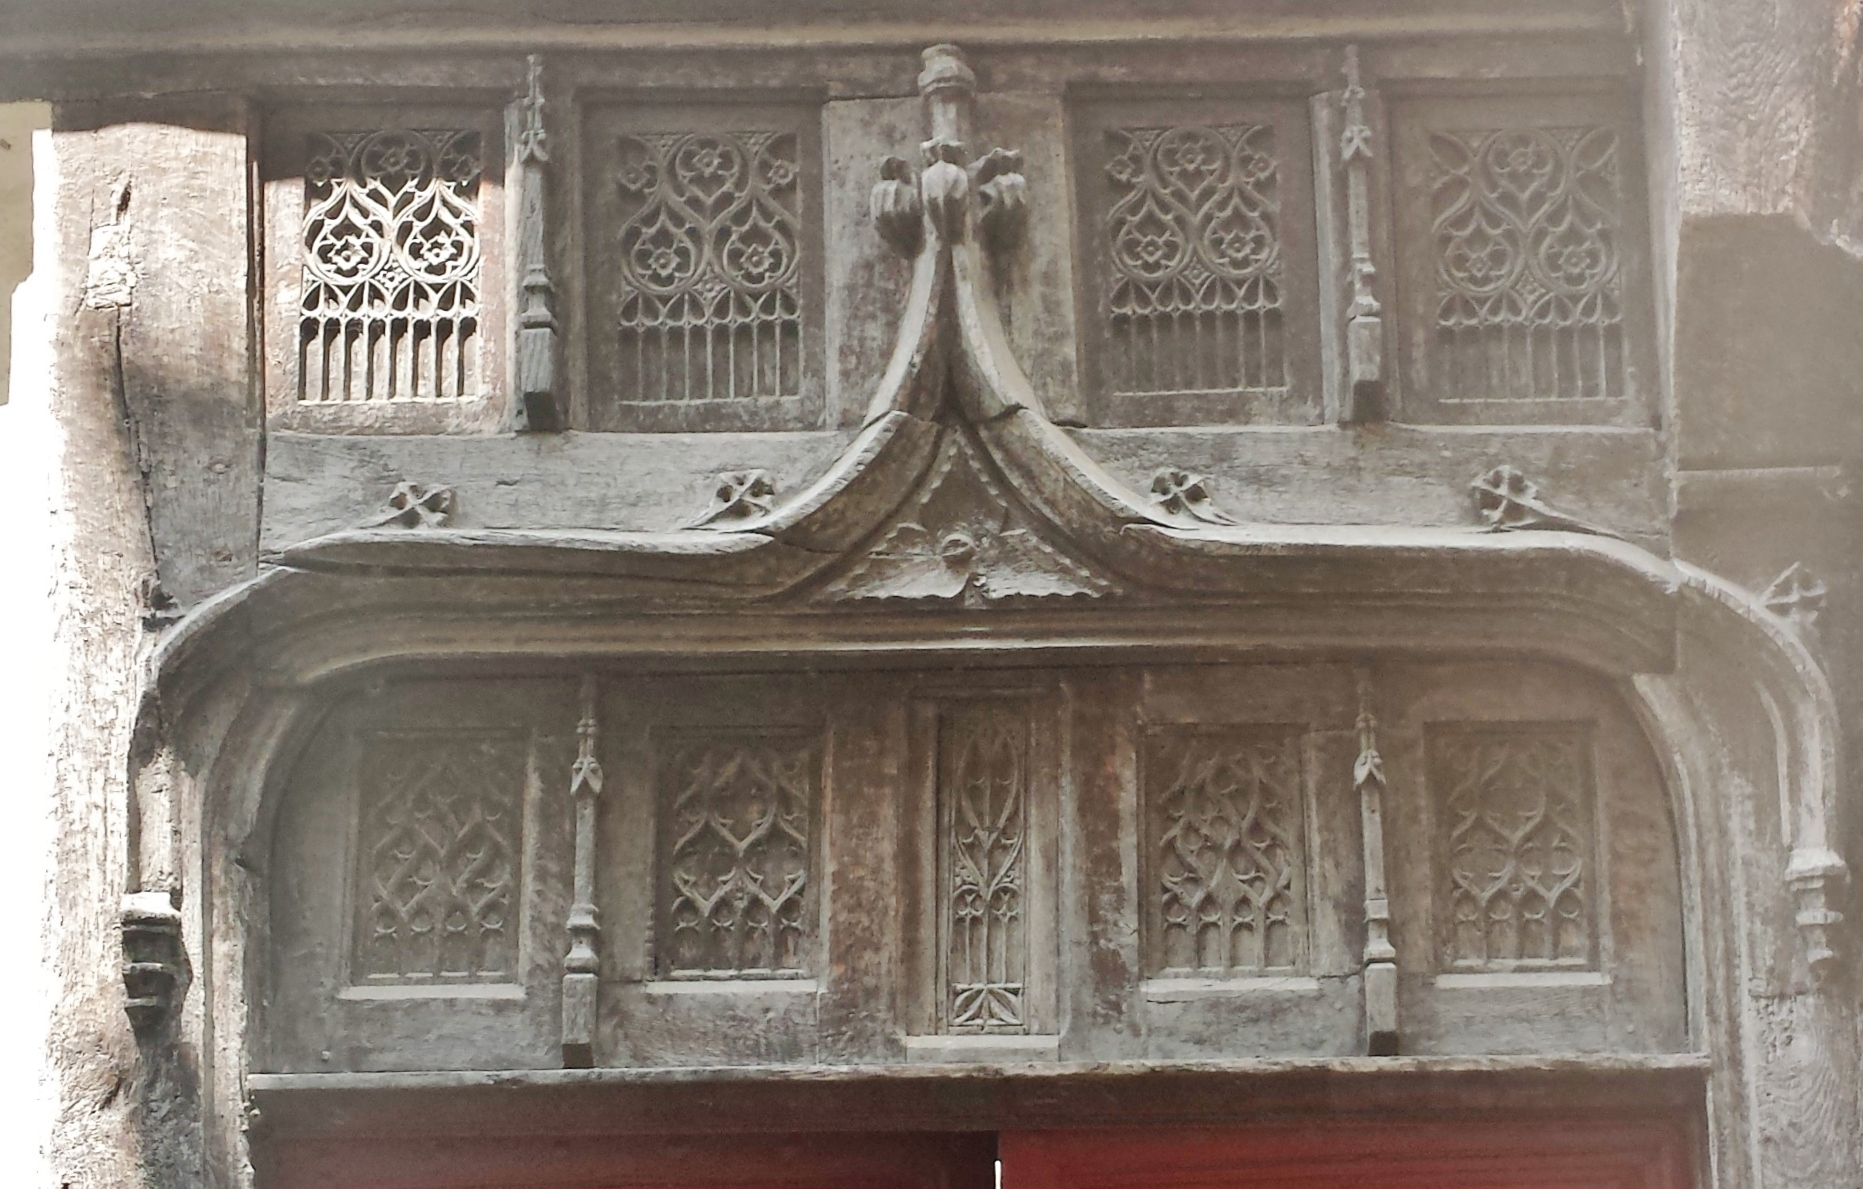 1189 #604A40 Ornate Door Frame Eglise Notre Dame The Dairy Free TravelerThe Dairy  picture/photo Ornate Front Doors 39791863